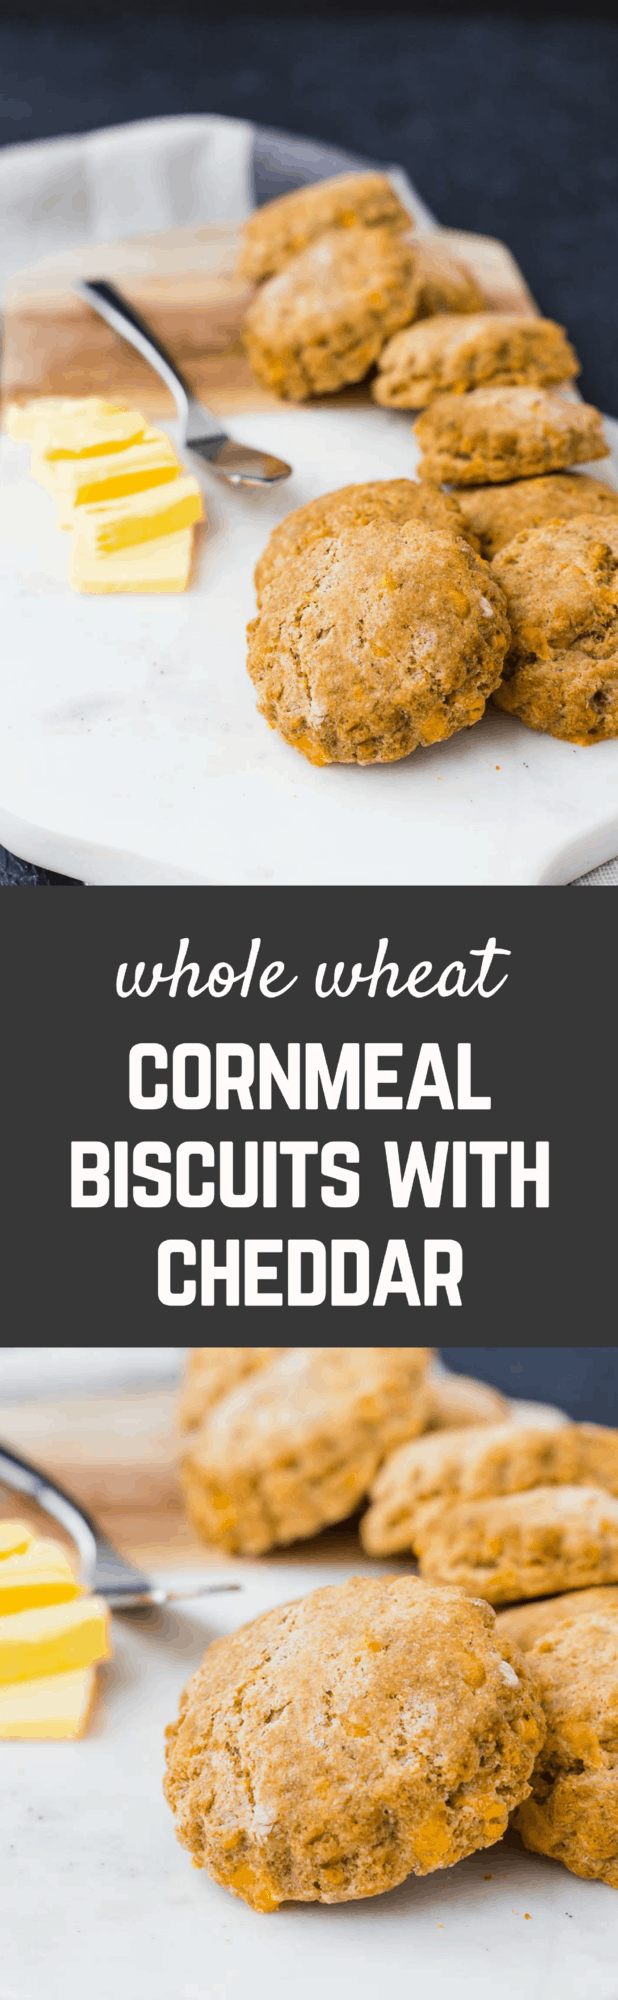 Whole wheat biscuits are flaky and decadent, like you'd expect. What's unexpectedly delicious is the crunch of cornmeal and flavor of cheddar and pepper. Get the easy recipe on RachelCooks.com!